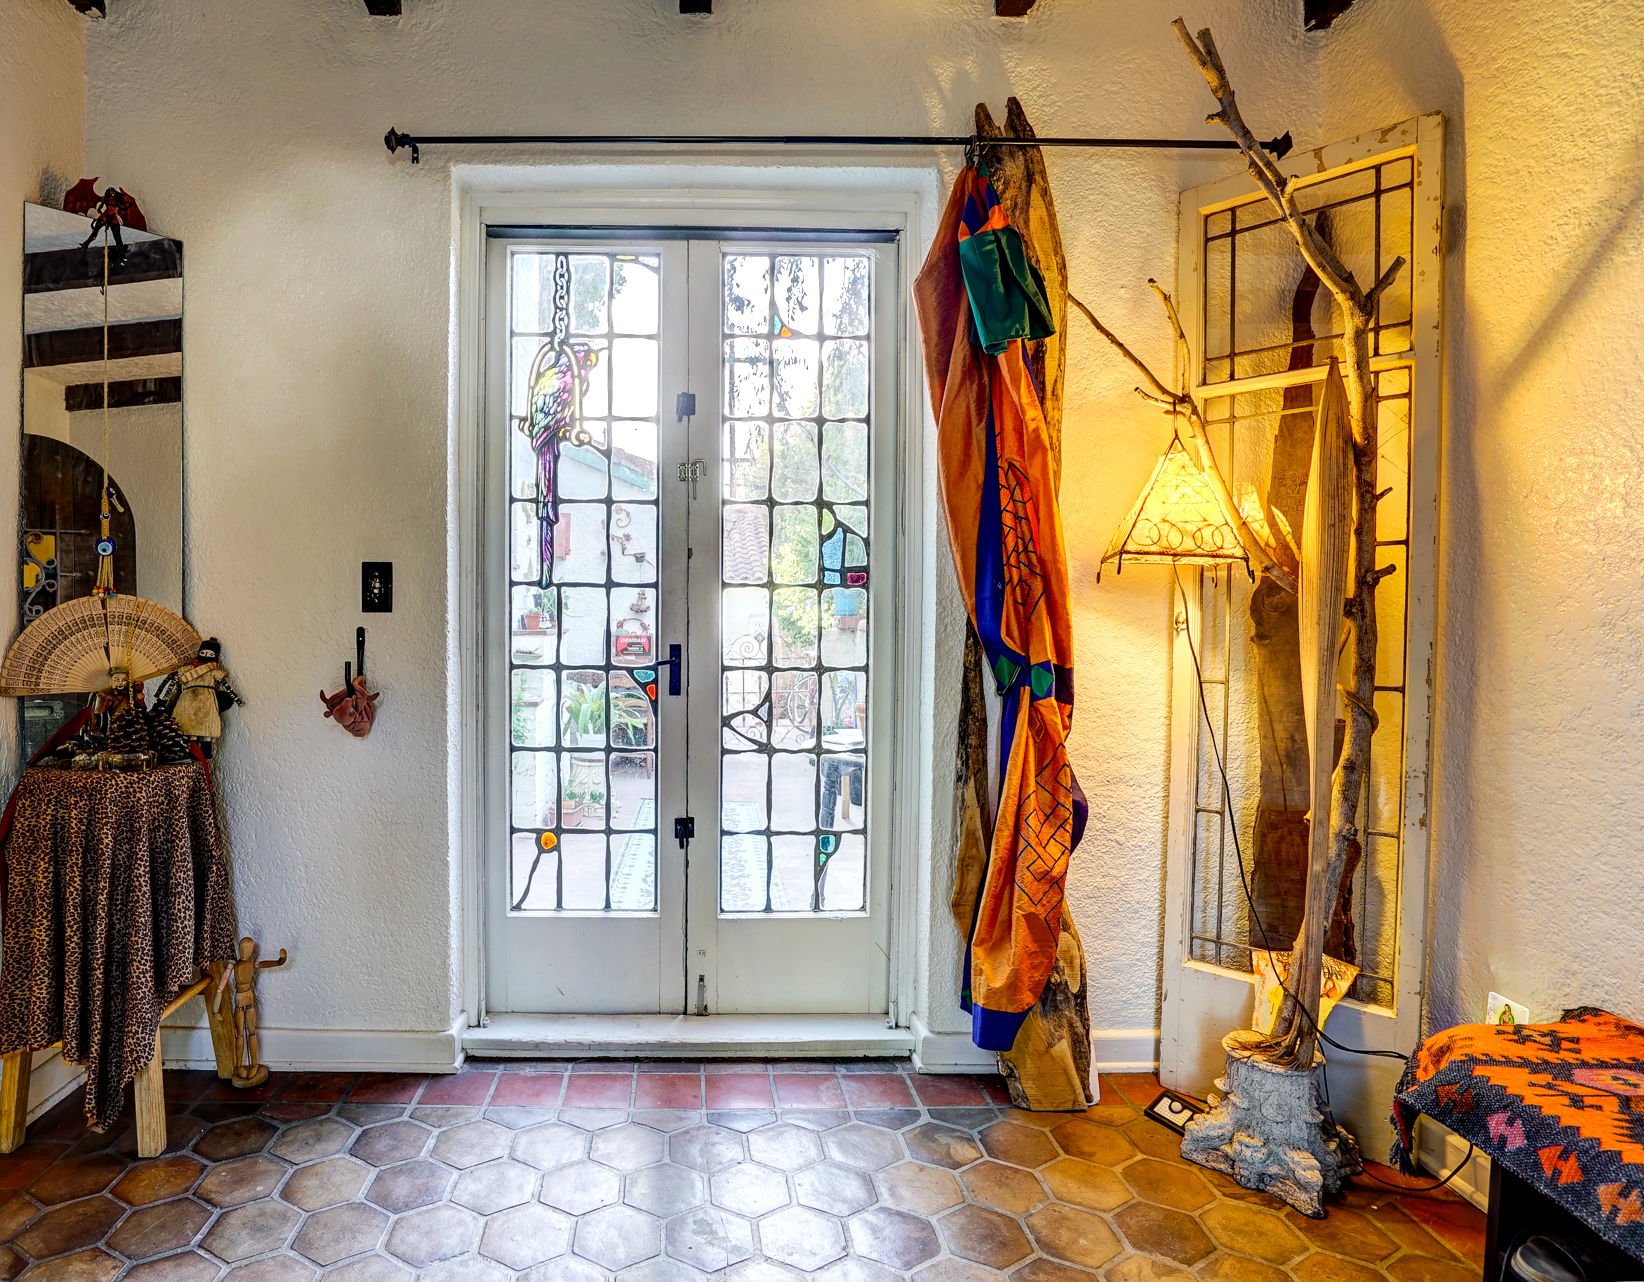 Alternate view of entry with original and amazing French doors with Jekel stained glass (note the parrot), overlooking the back patio.